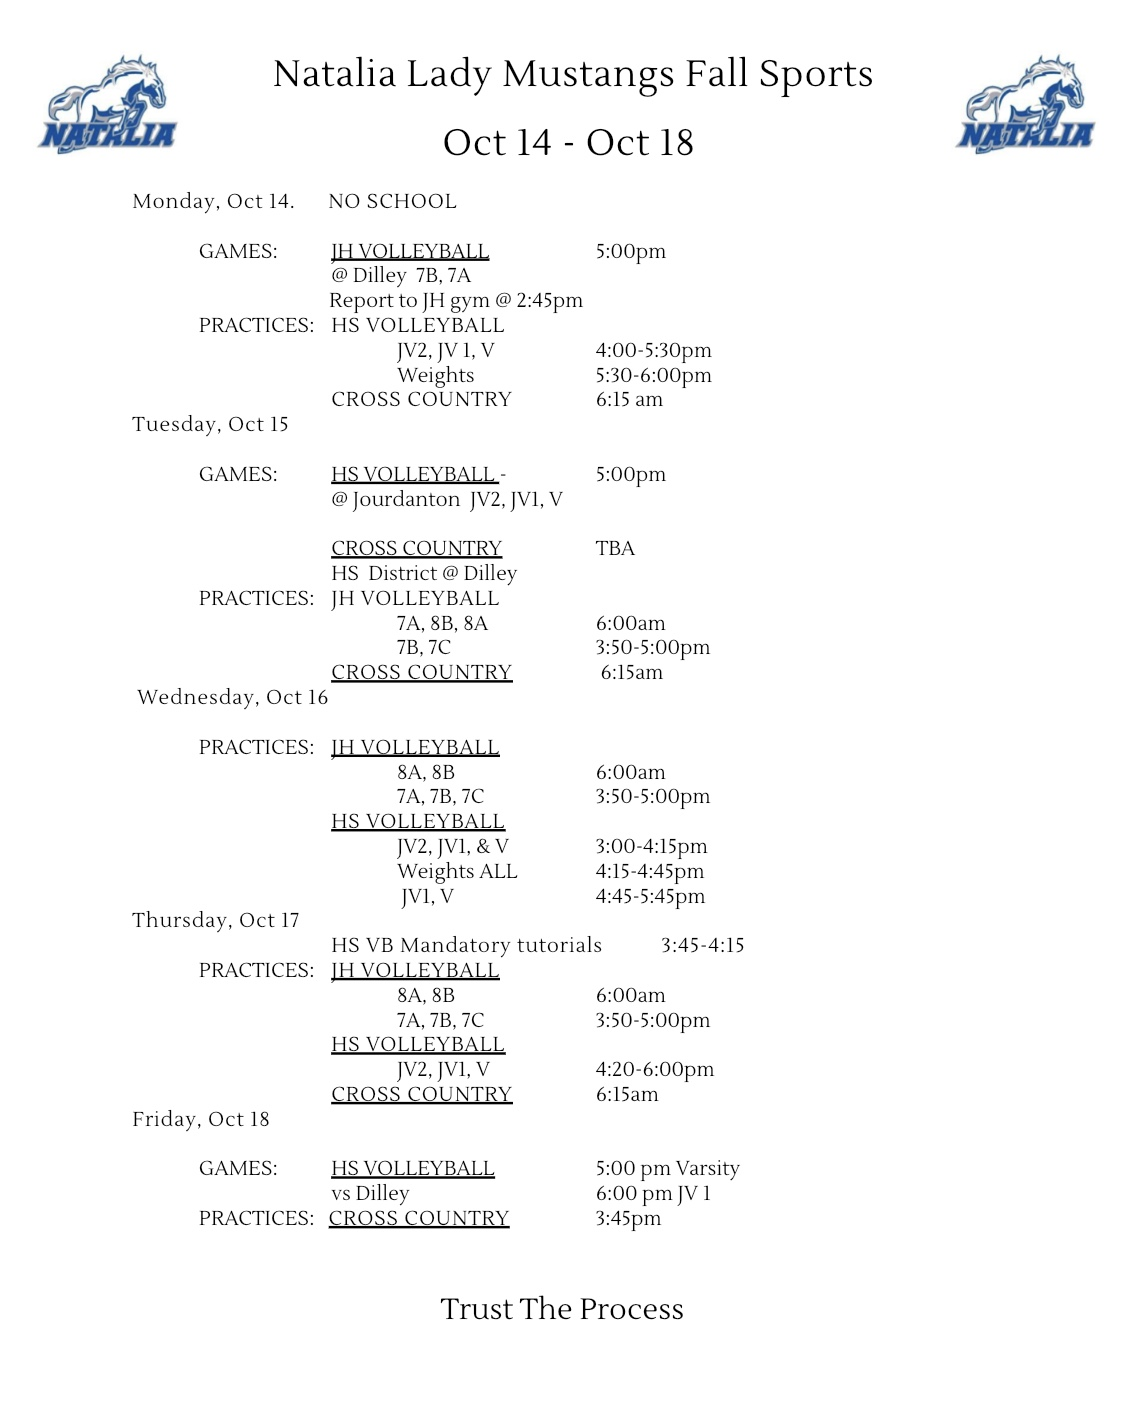 Lady Mustangs Weekly Itinerary 10/14-10/18